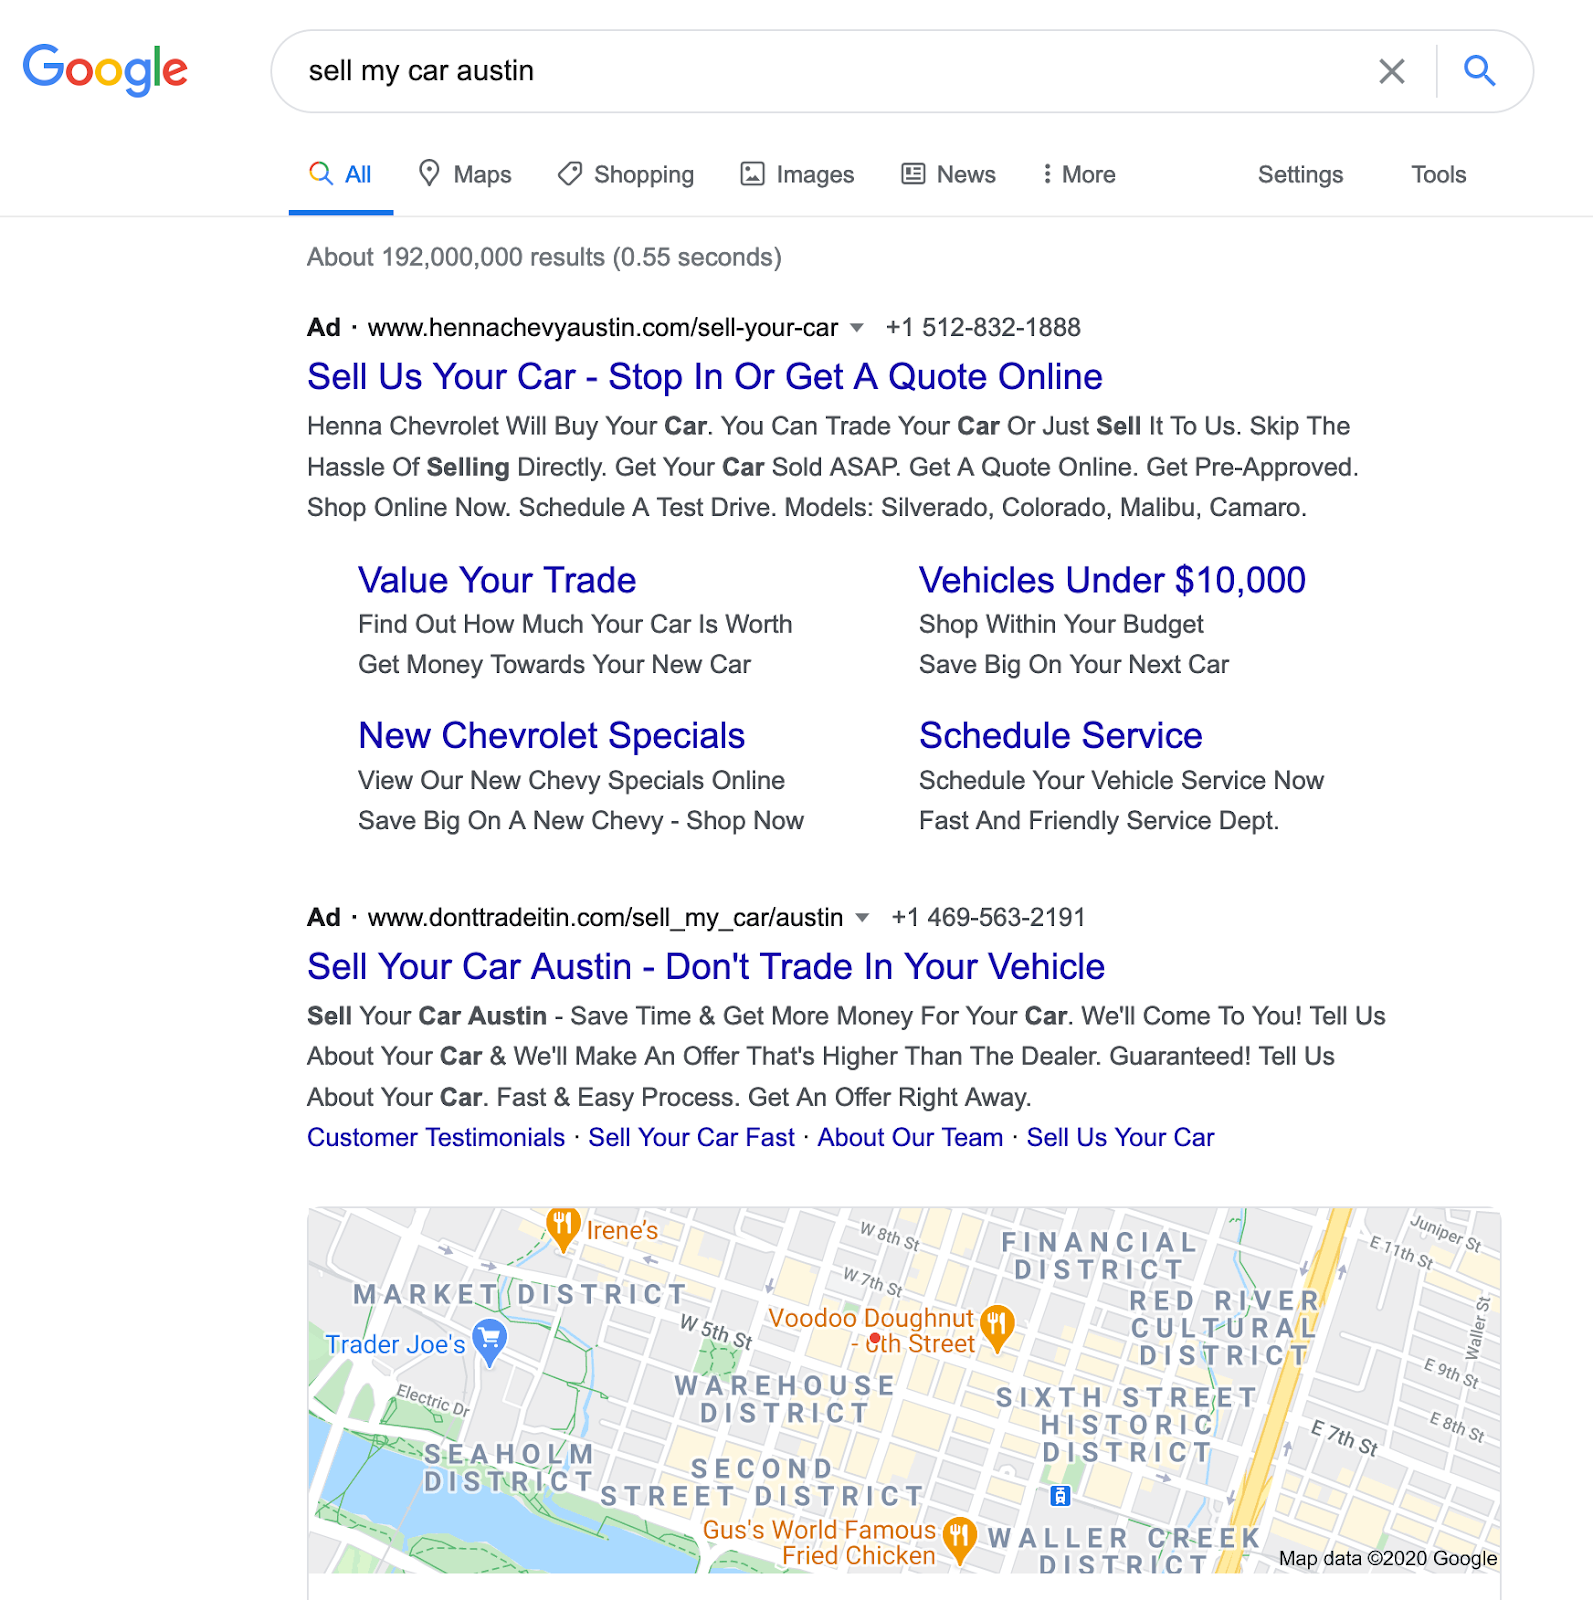 Results generated by Google search of 'Sell my car Austin'.